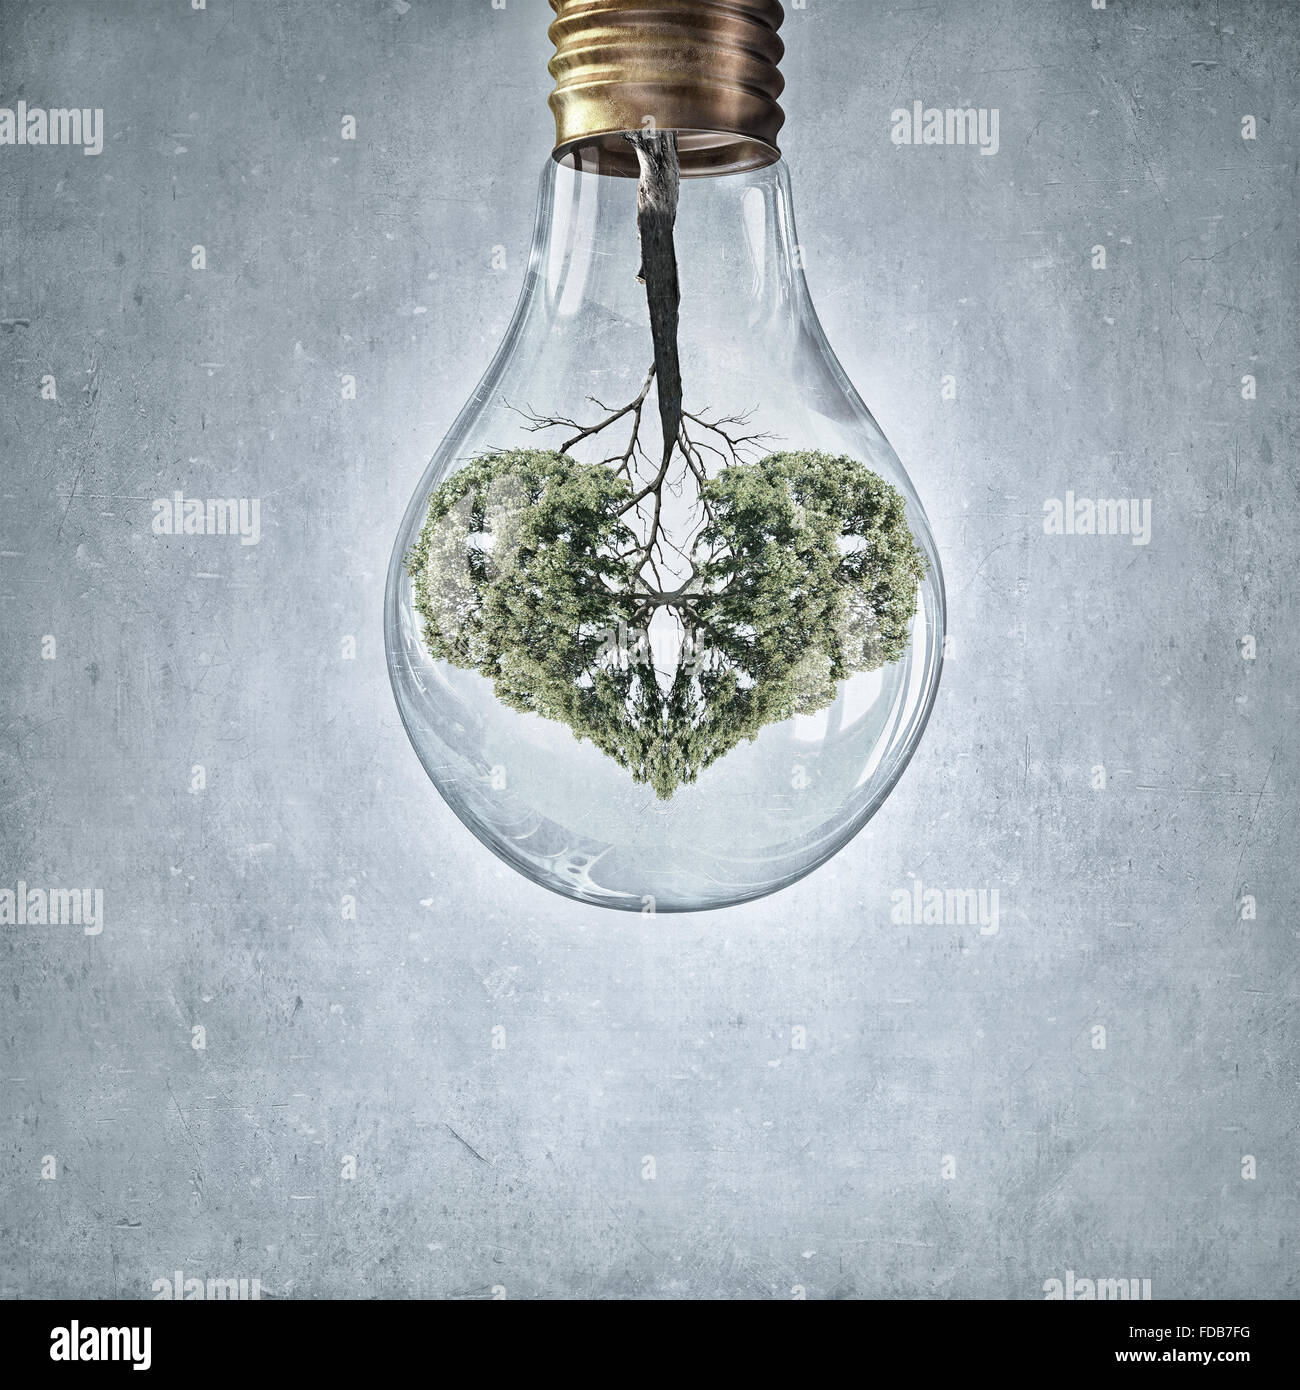 Glass lightbulb with green tree growing inside - Stock Image